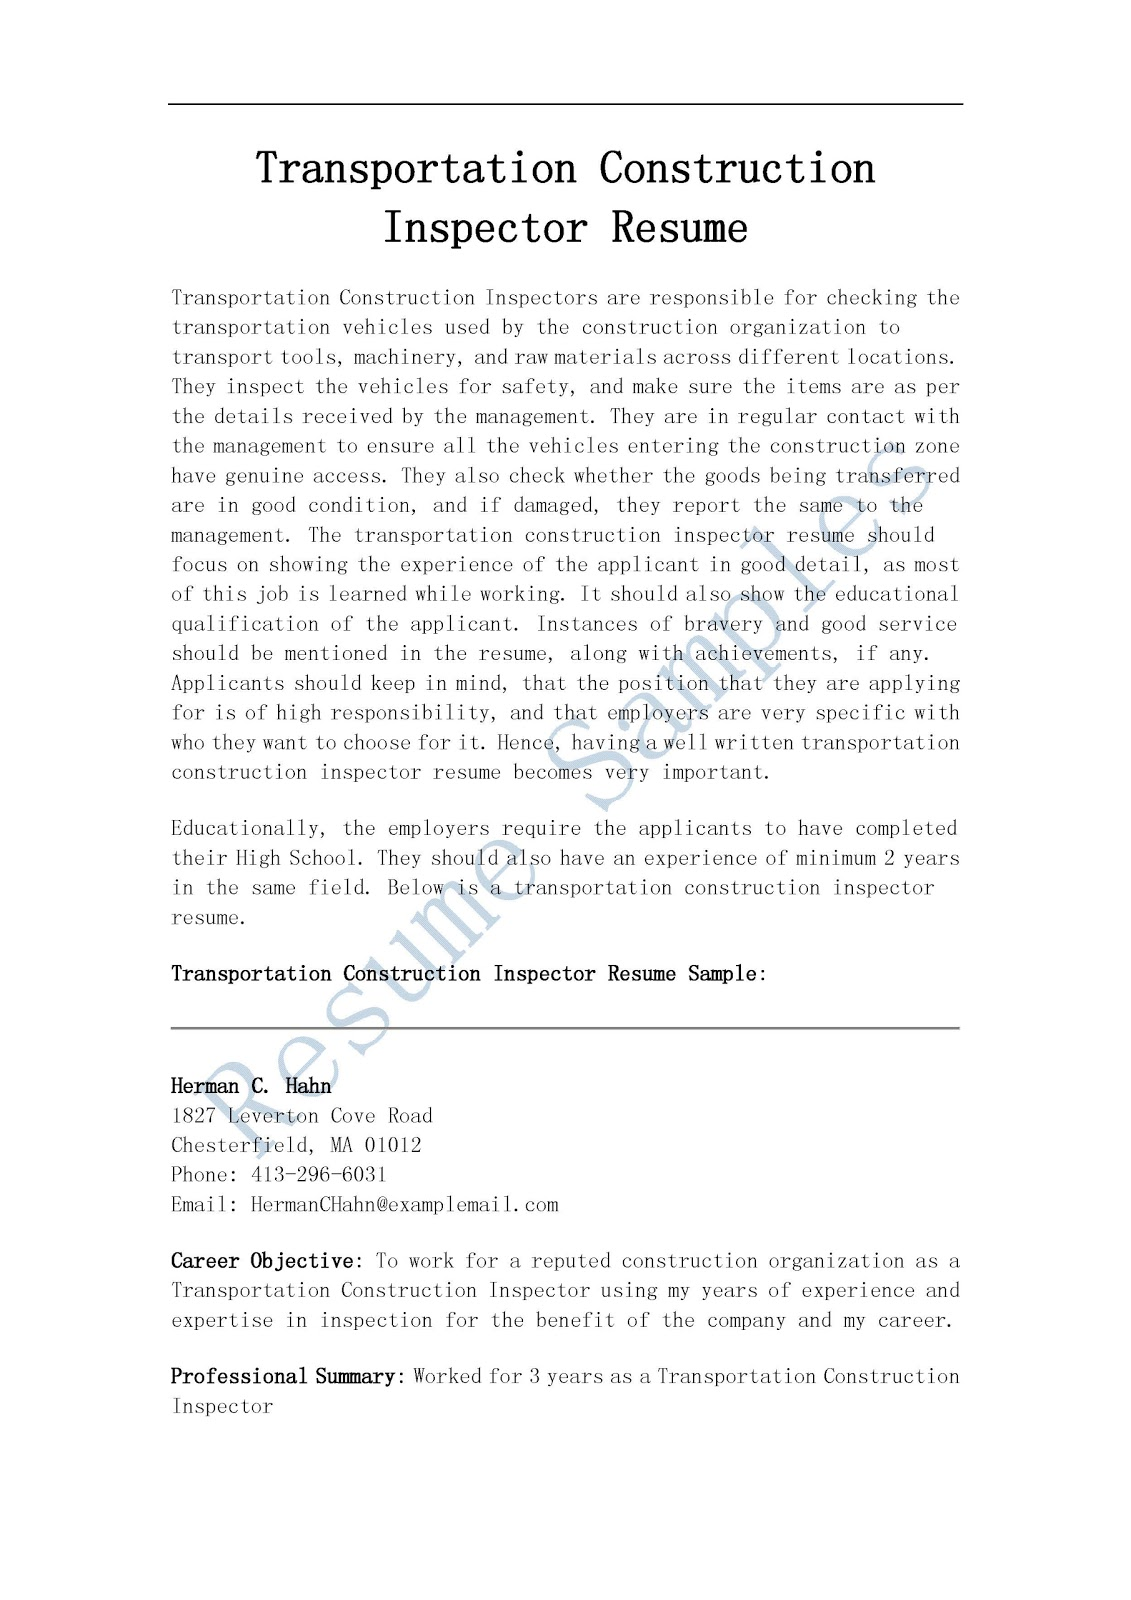 sample of essay questions and answer types of essay according to - Quality Inspector Resume